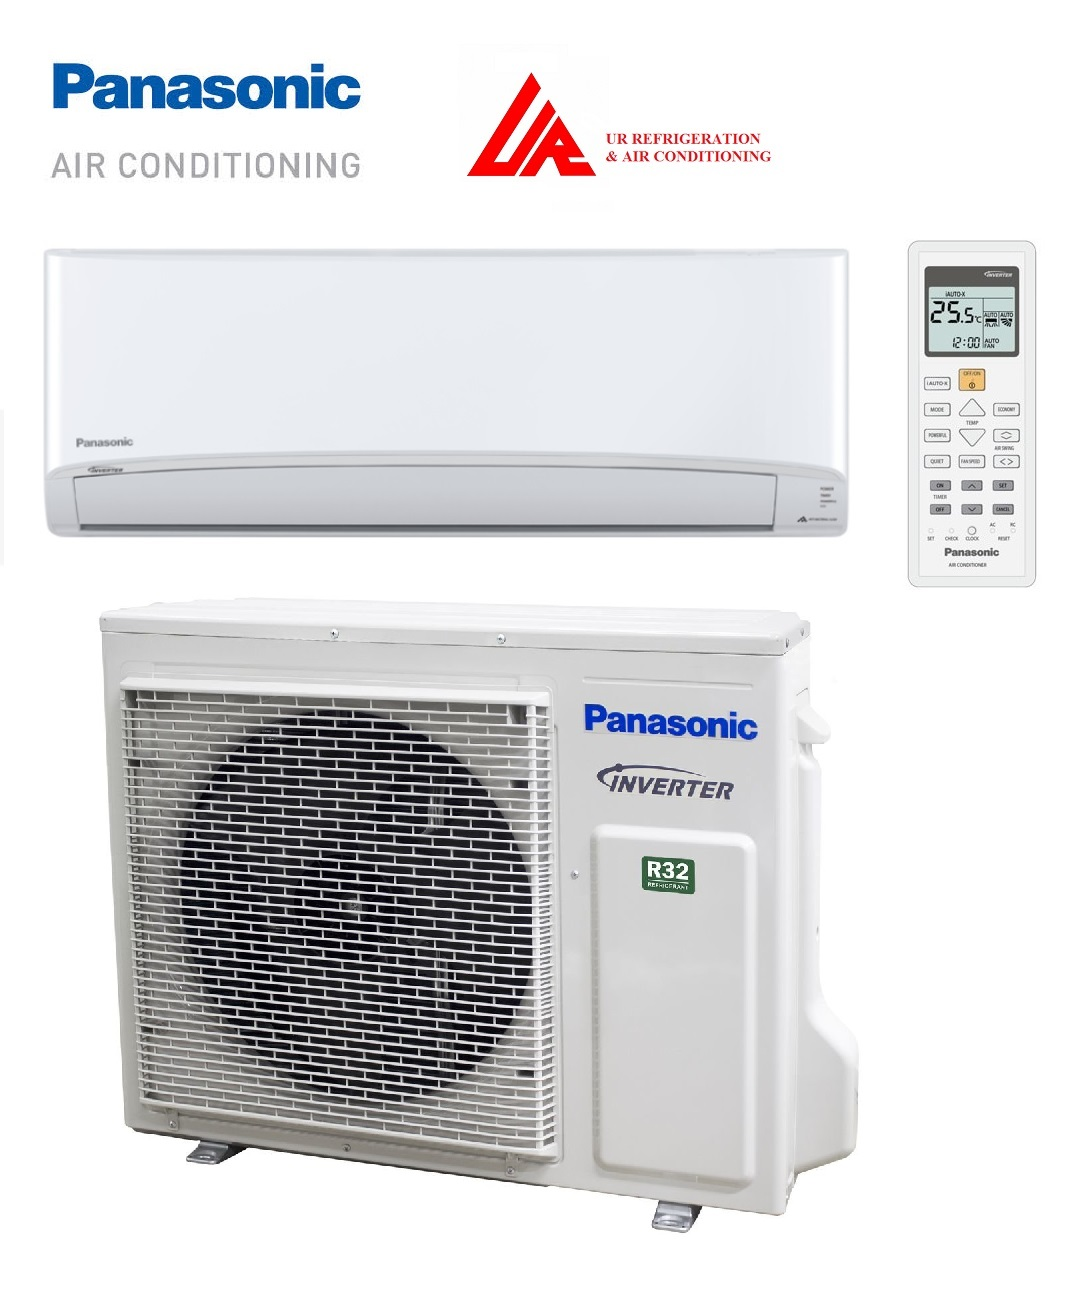 Panasonic Air conditioner model: CS/CU-RZ71VKR